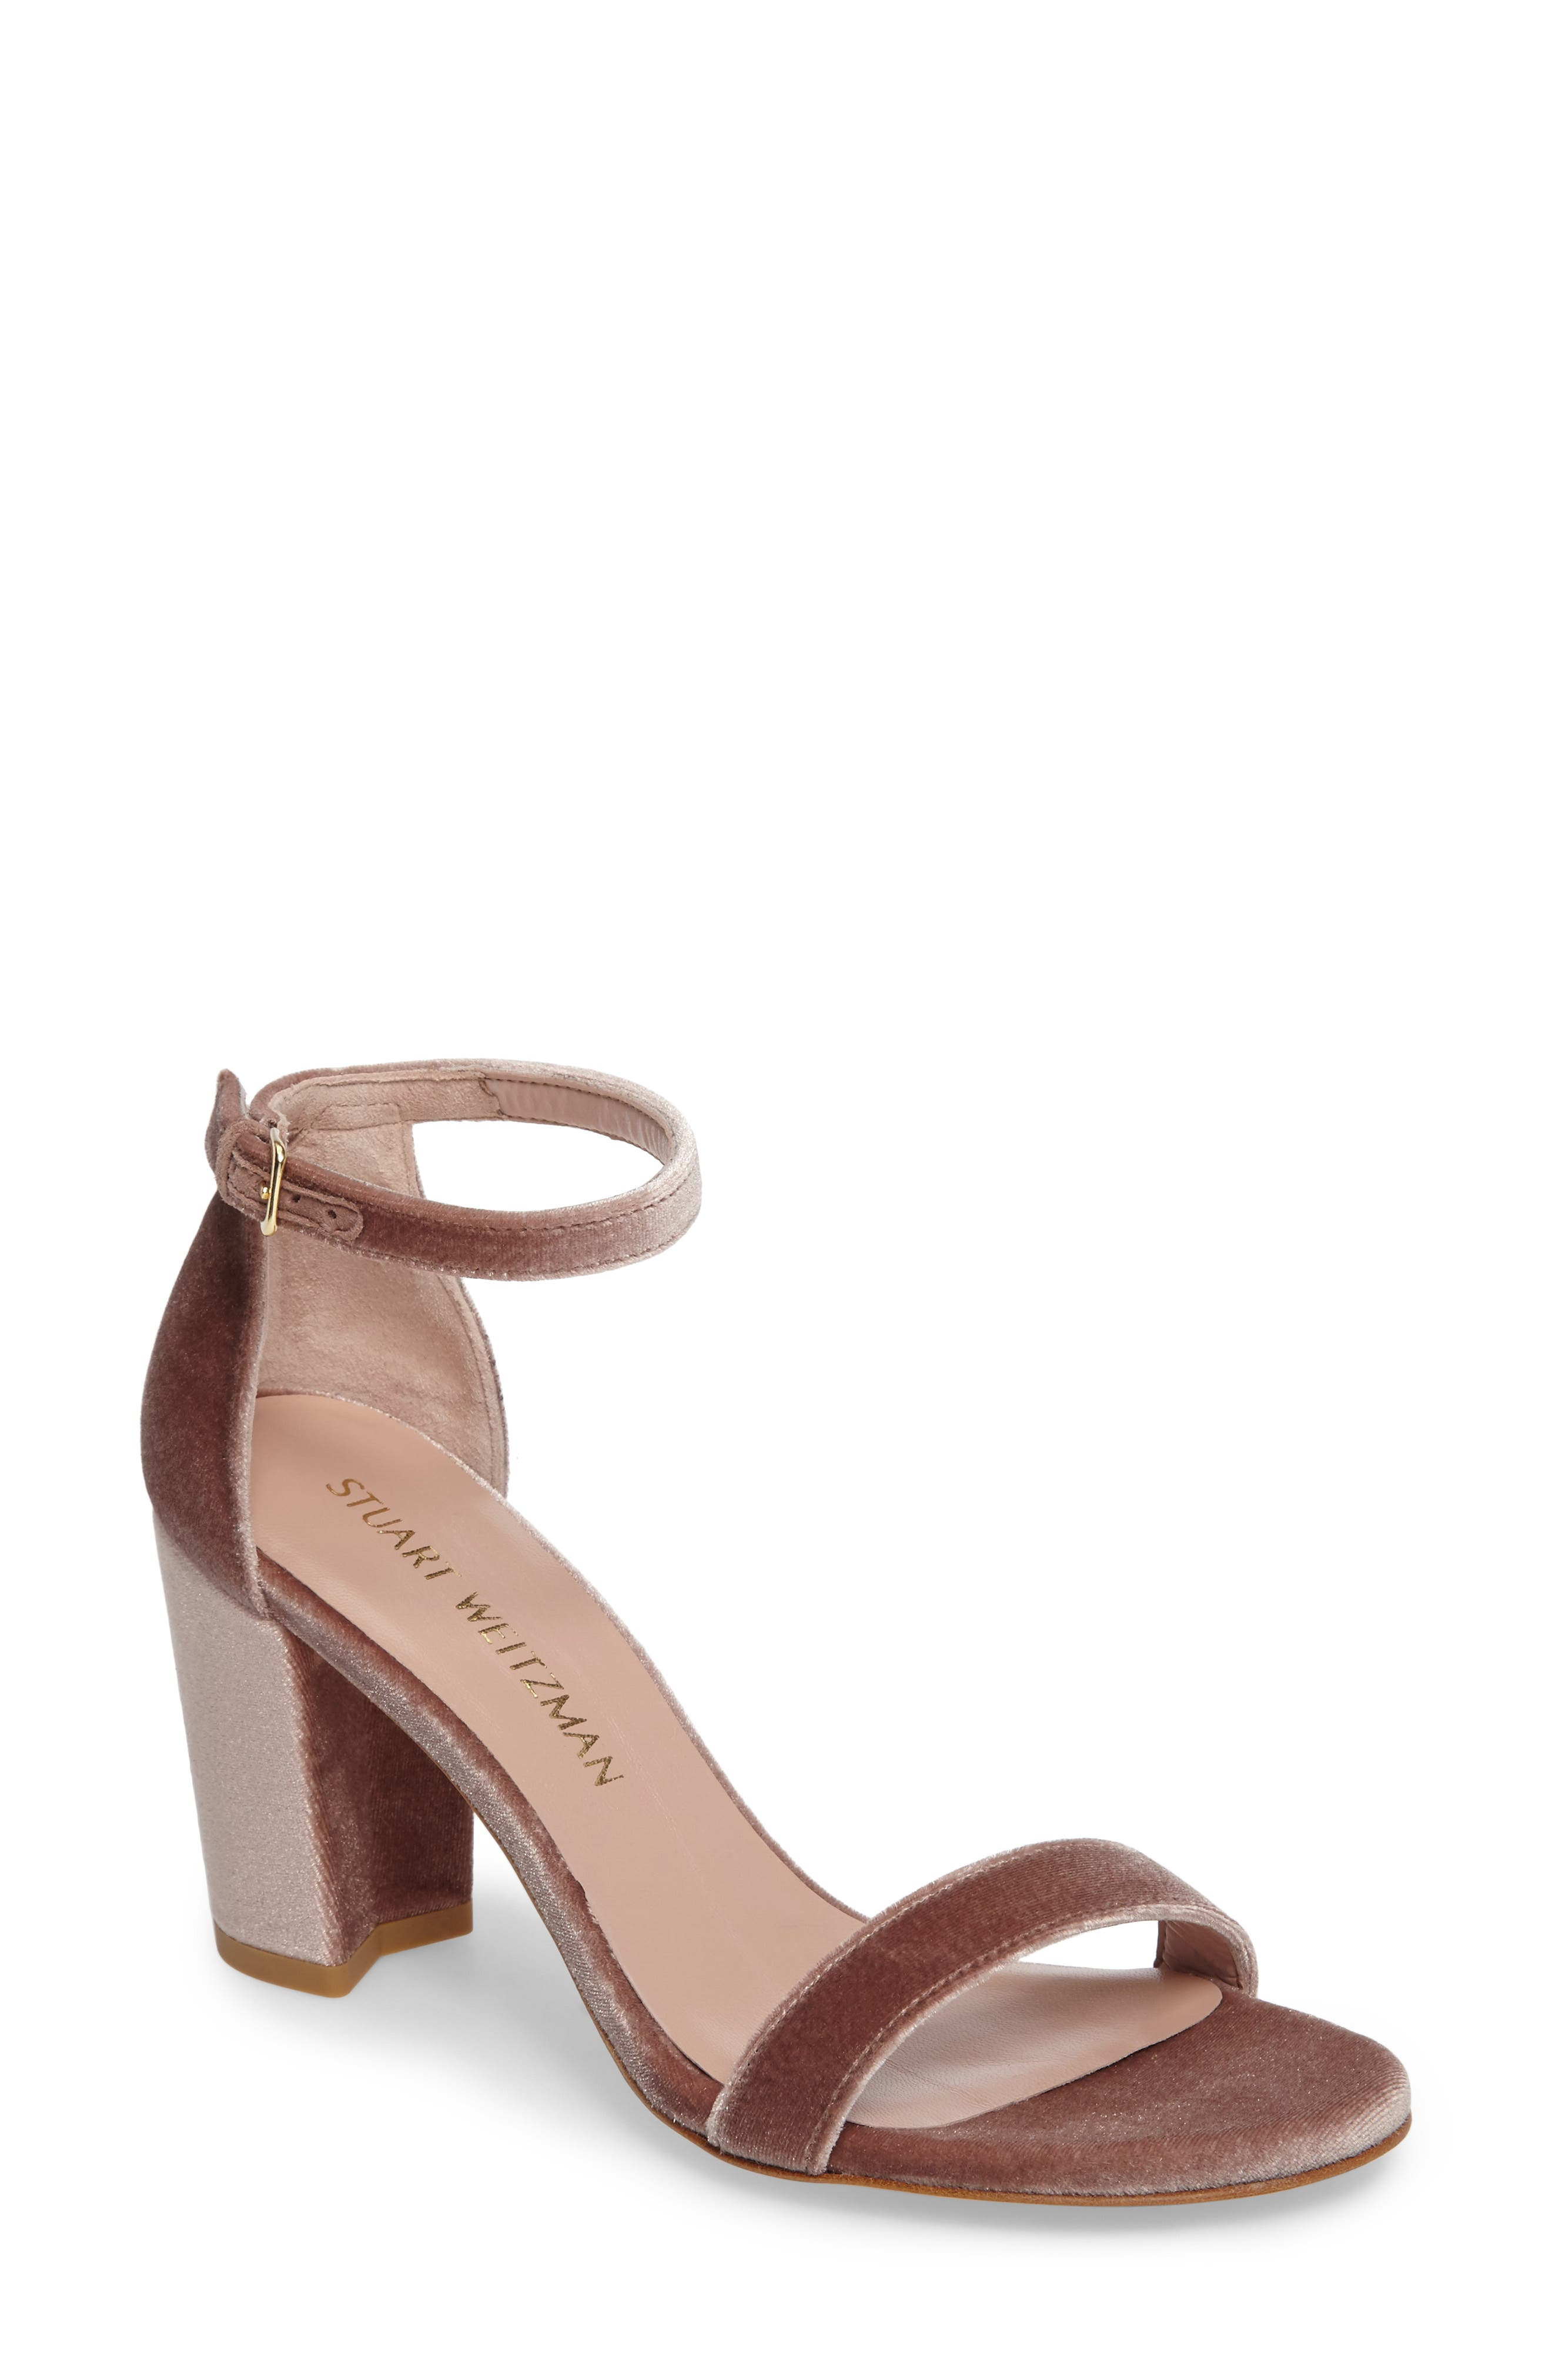 NearlyNude Ankle Strap Sandal,                             Main thumbnail 27, color,